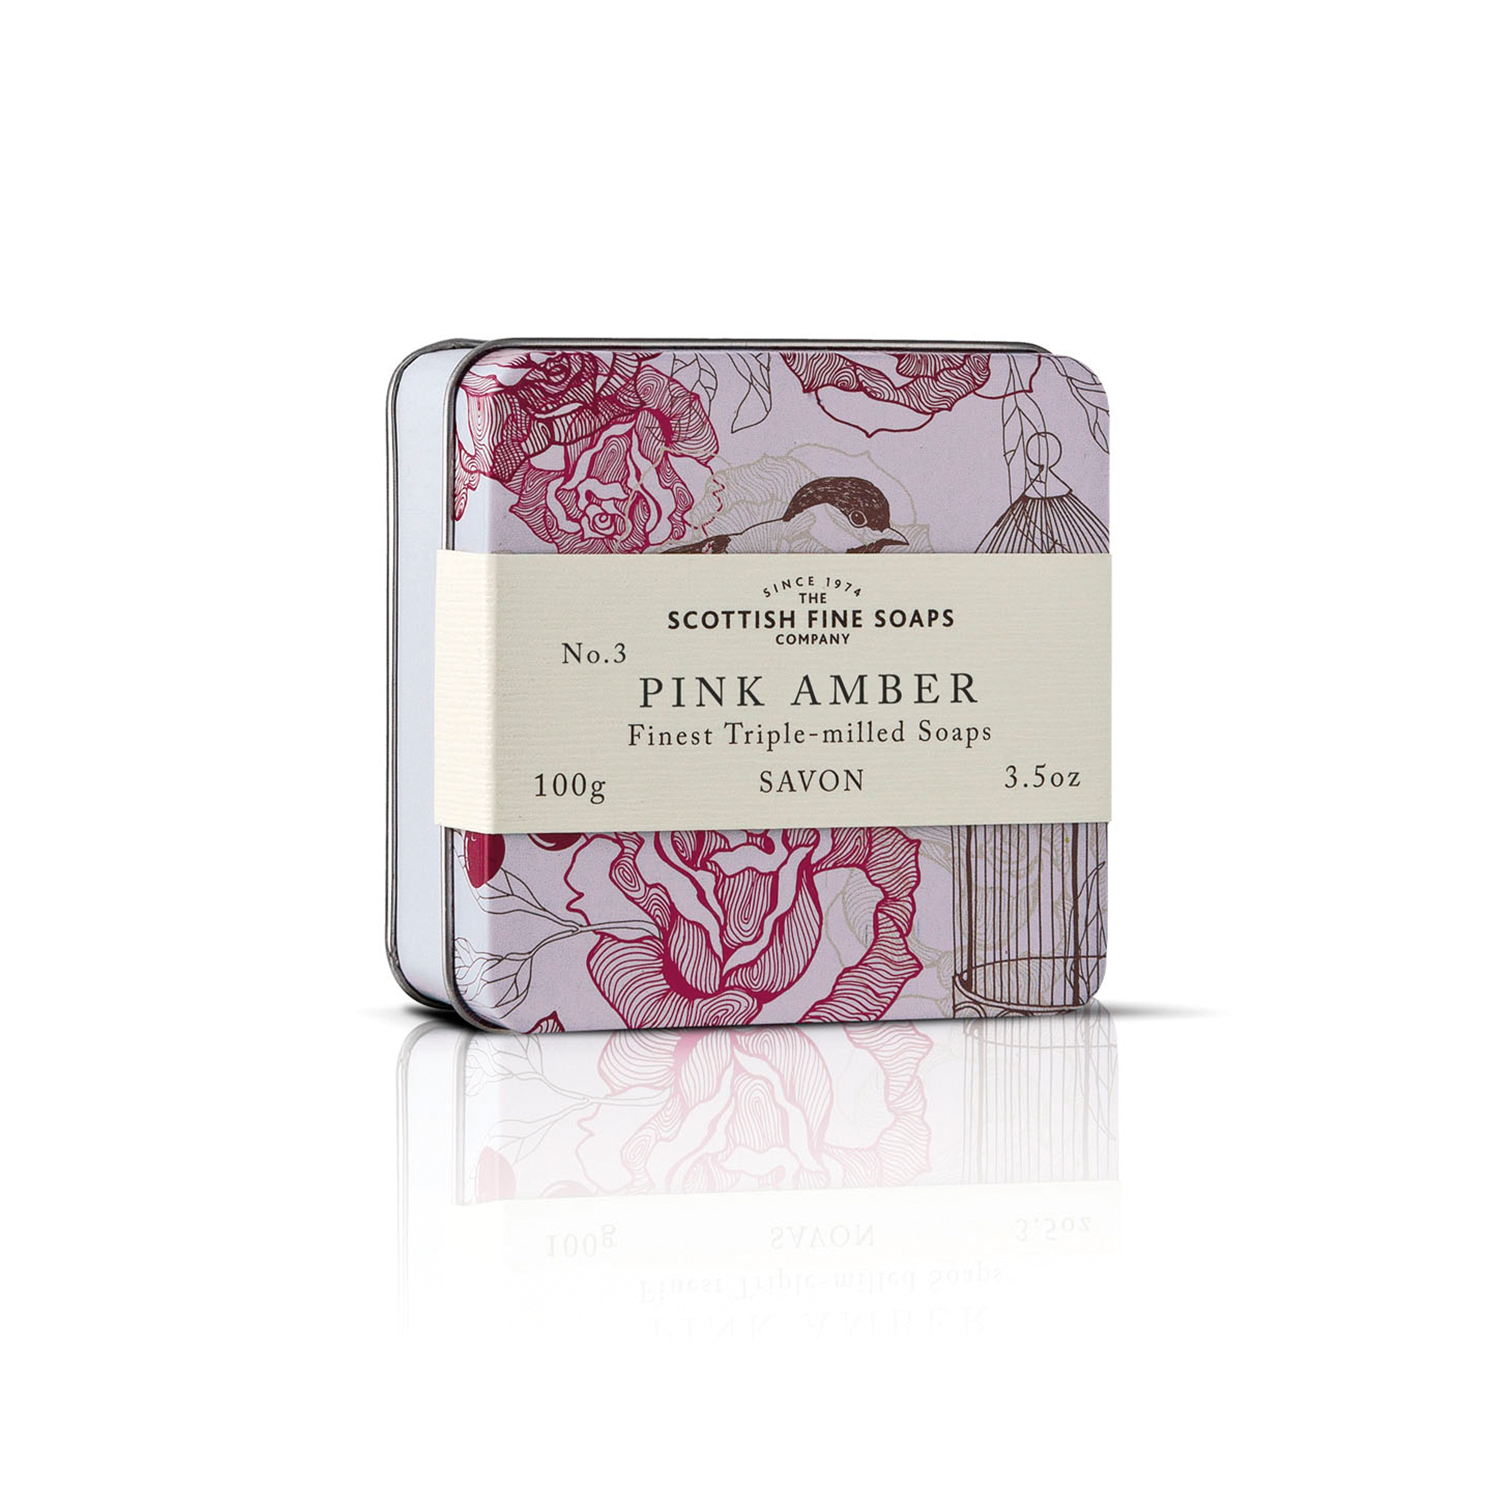 The Scottish Fine Soaps Company – Set of 4 Assorted Vintage Soaps in Gift Tins